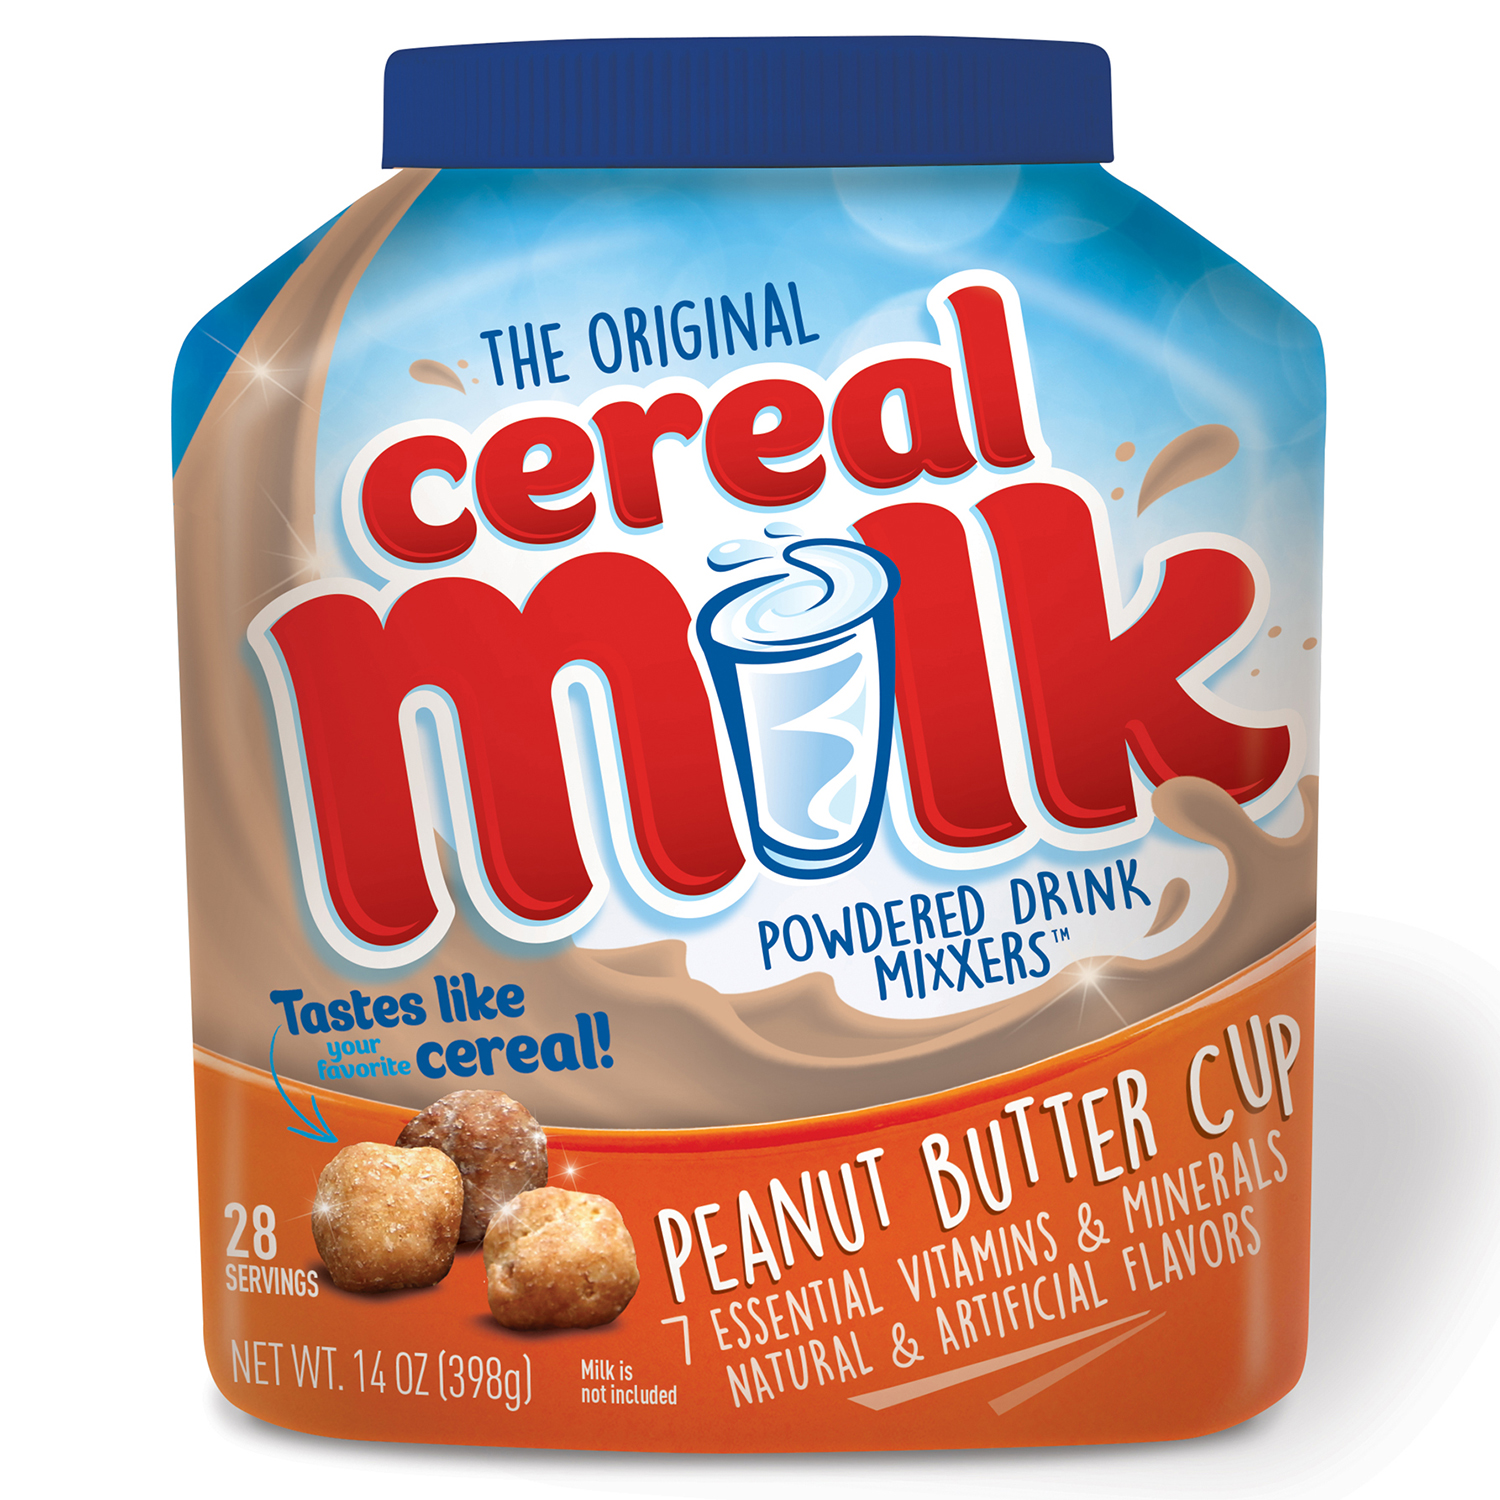 The Original Cereal Milk Mixxers Peanut Butter Cup 14 oz